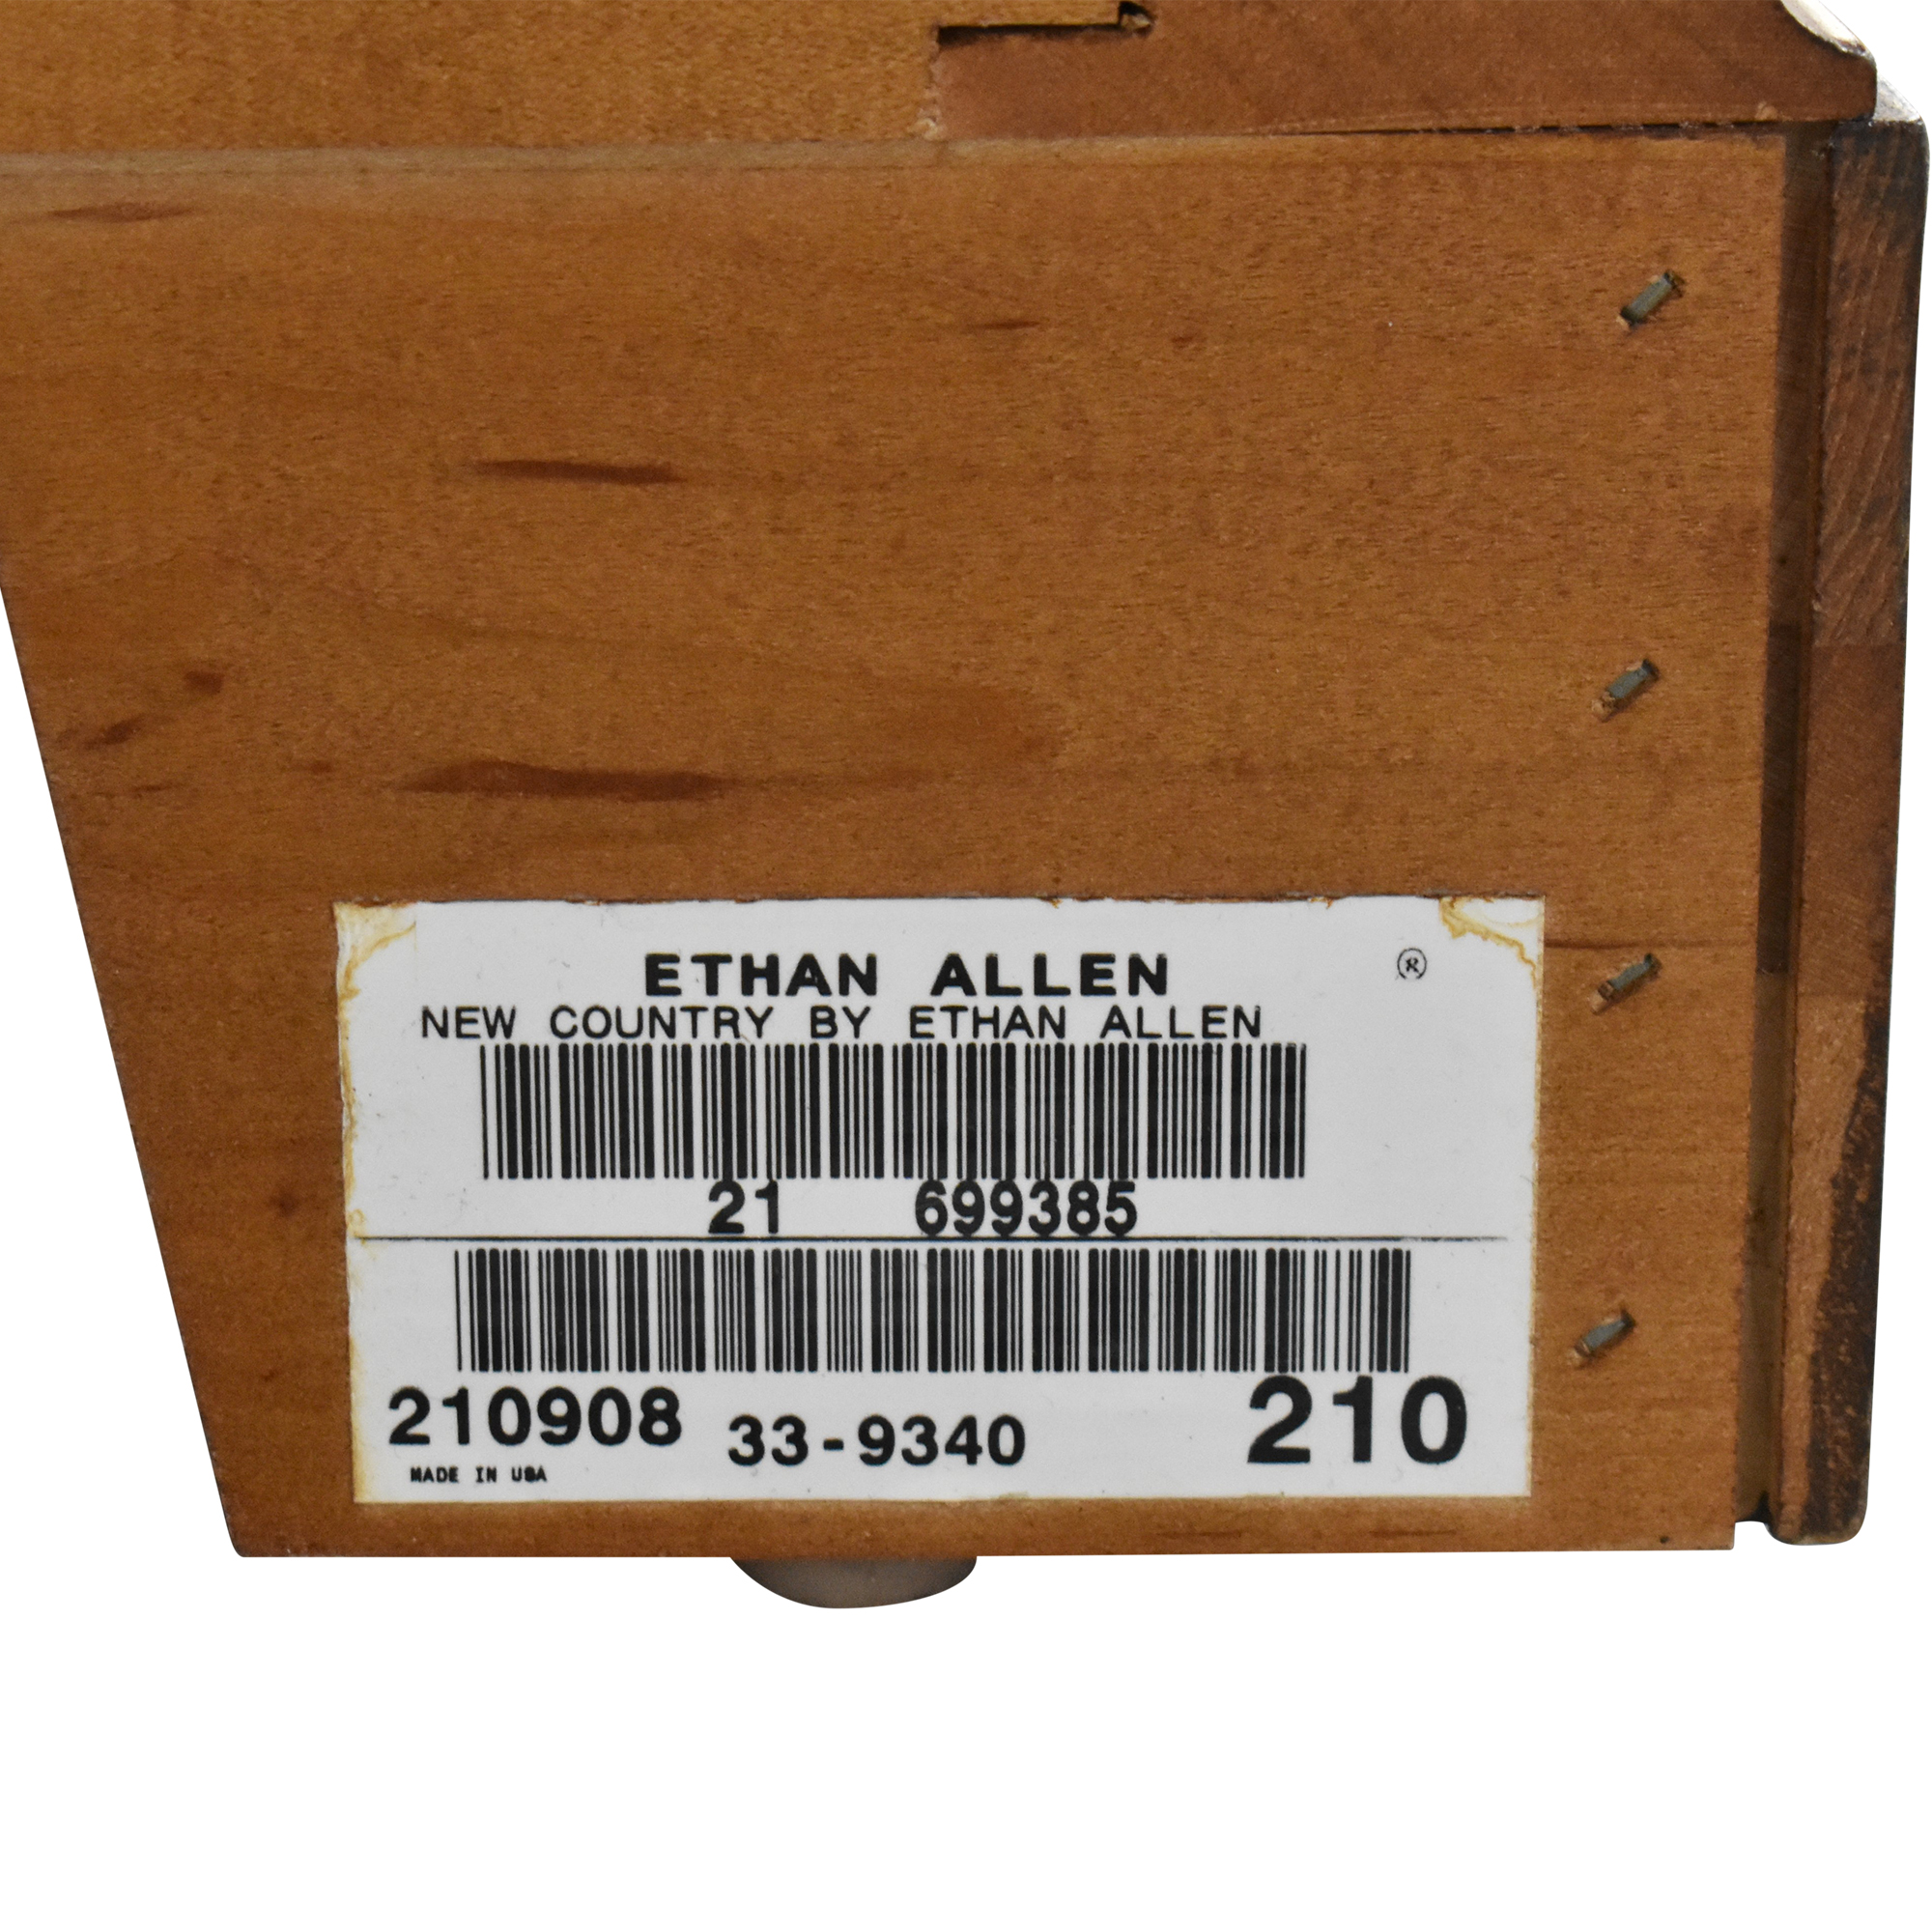 Ethan Allen Ethan Allen New Country Media Cabinet dimensions